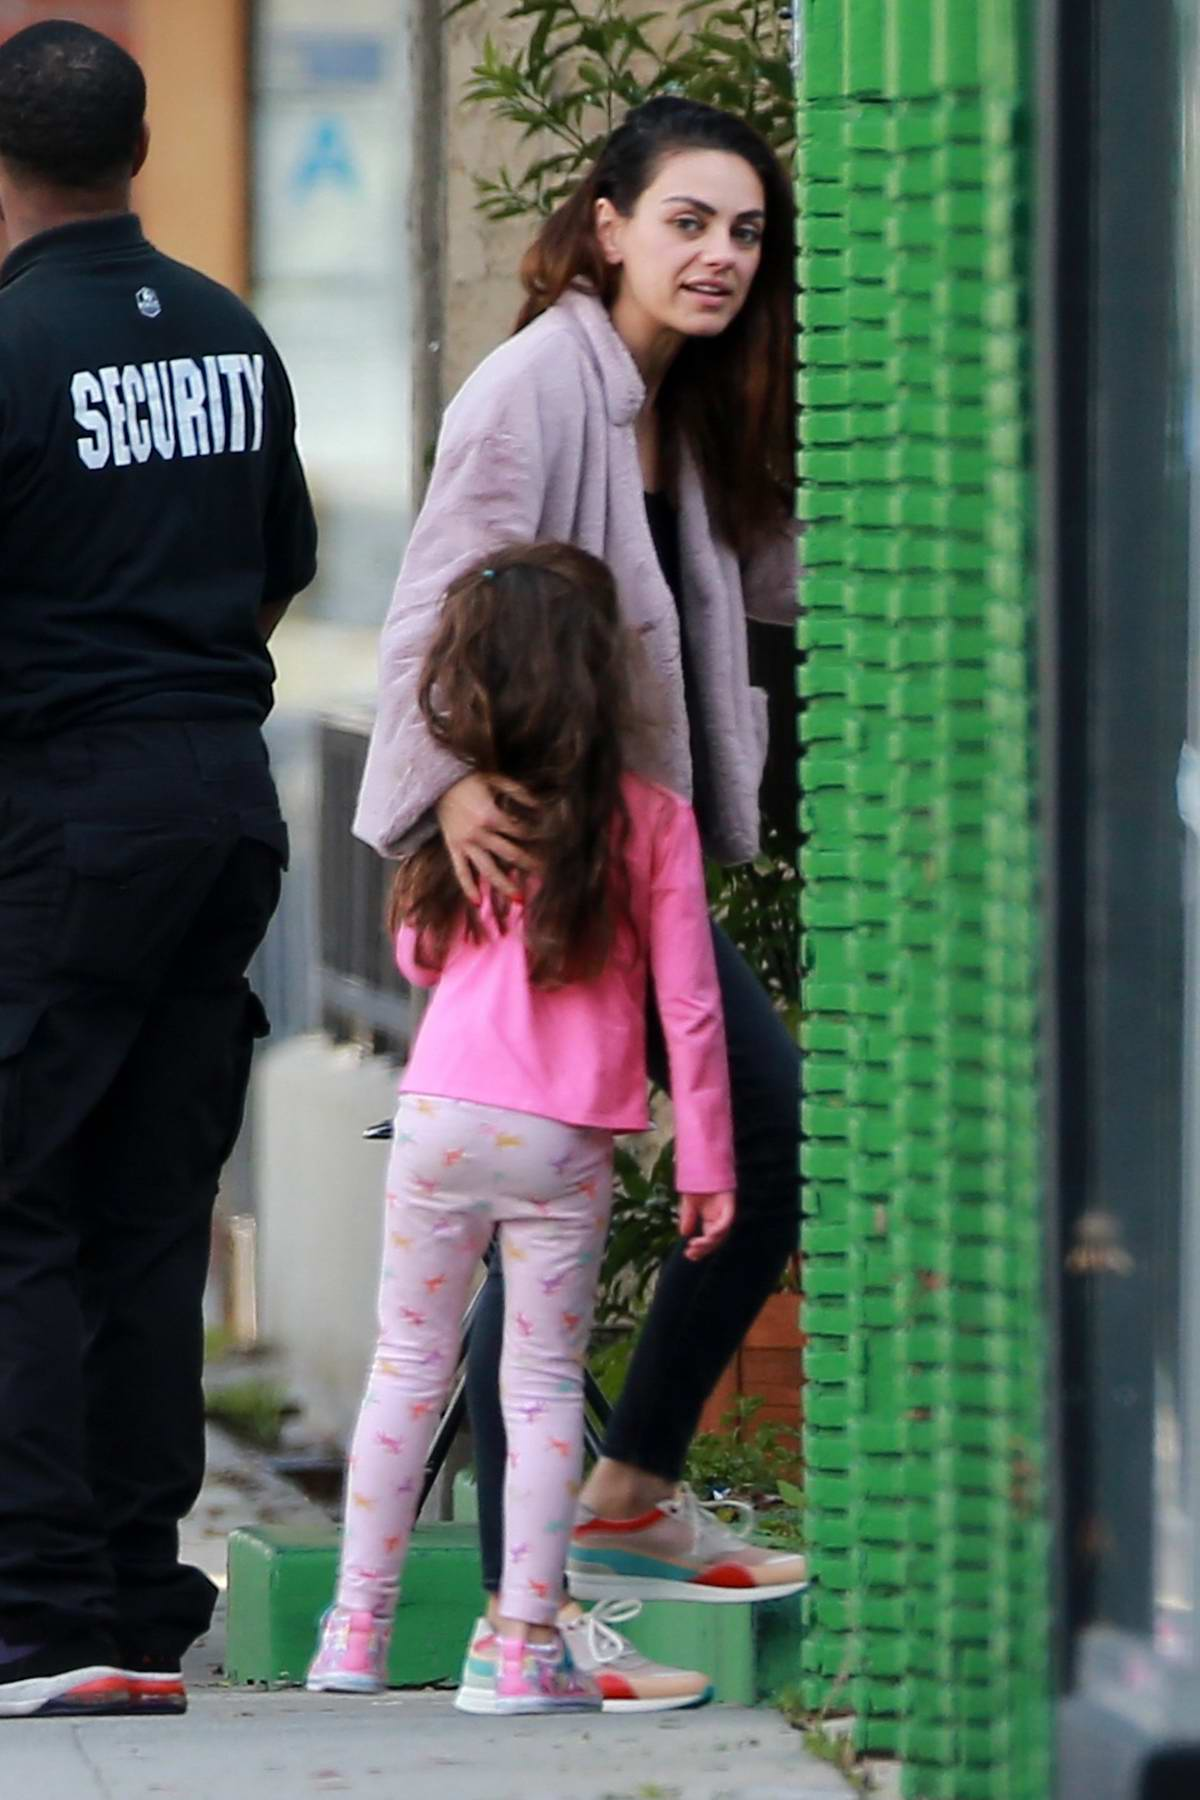 Mila Kunis seen out and about with her daughter in West Hollywood, California